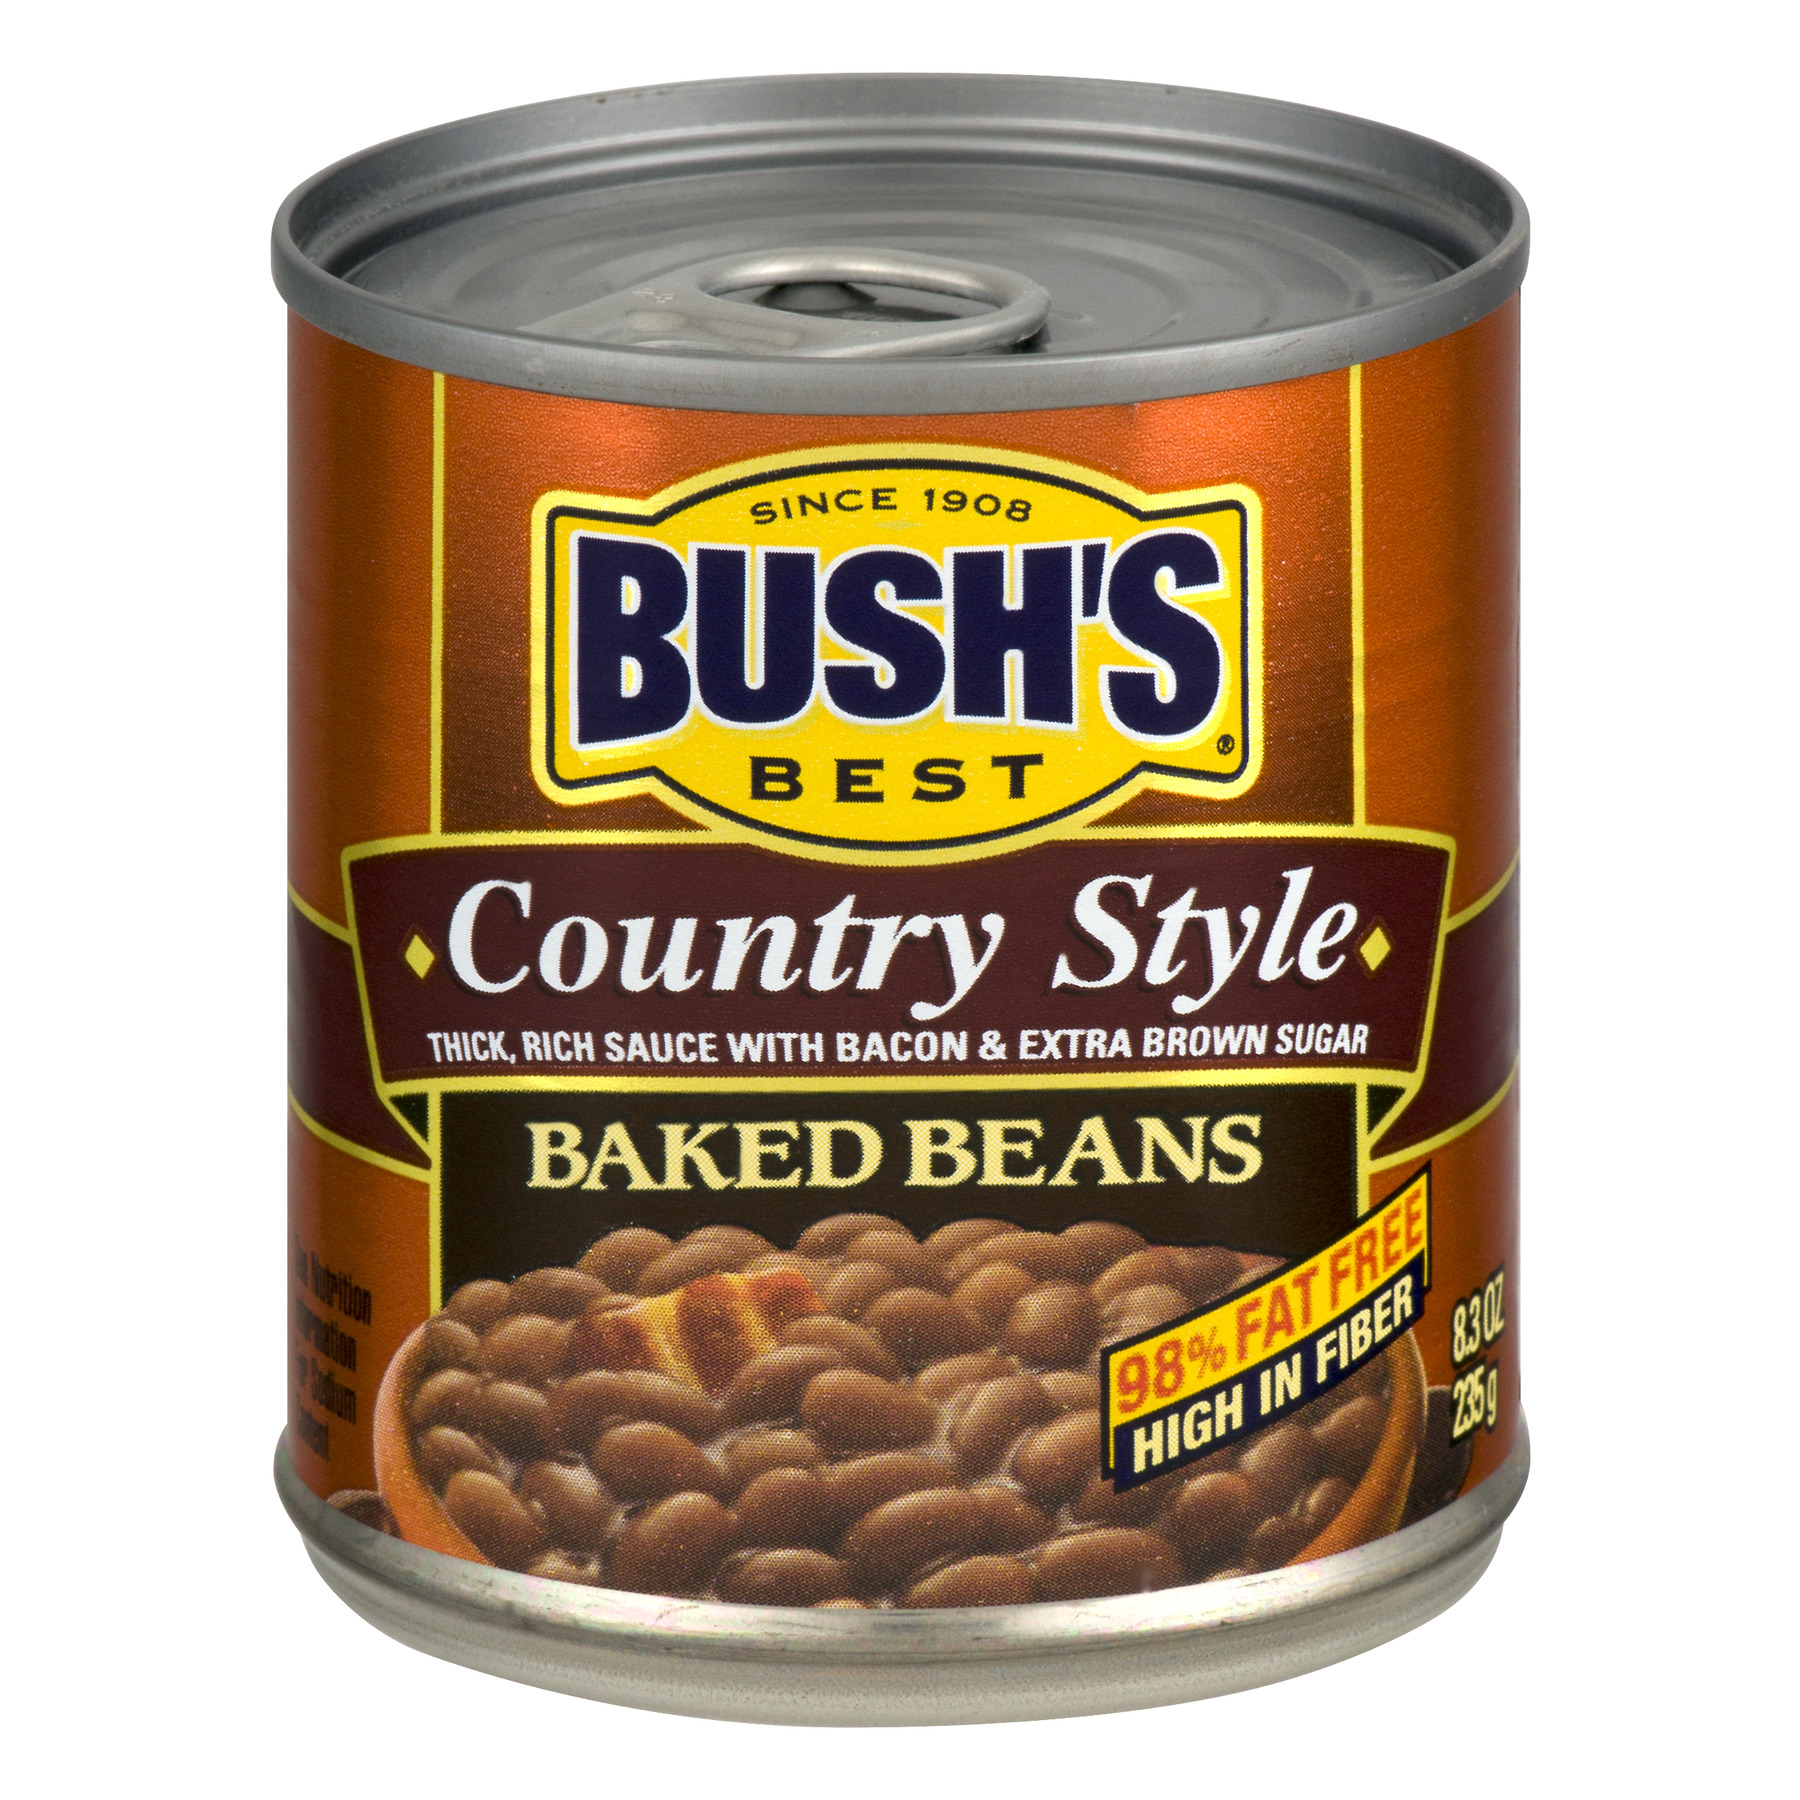 BUSH'S BEST Baked Beans Country Style, 8.3 OZ